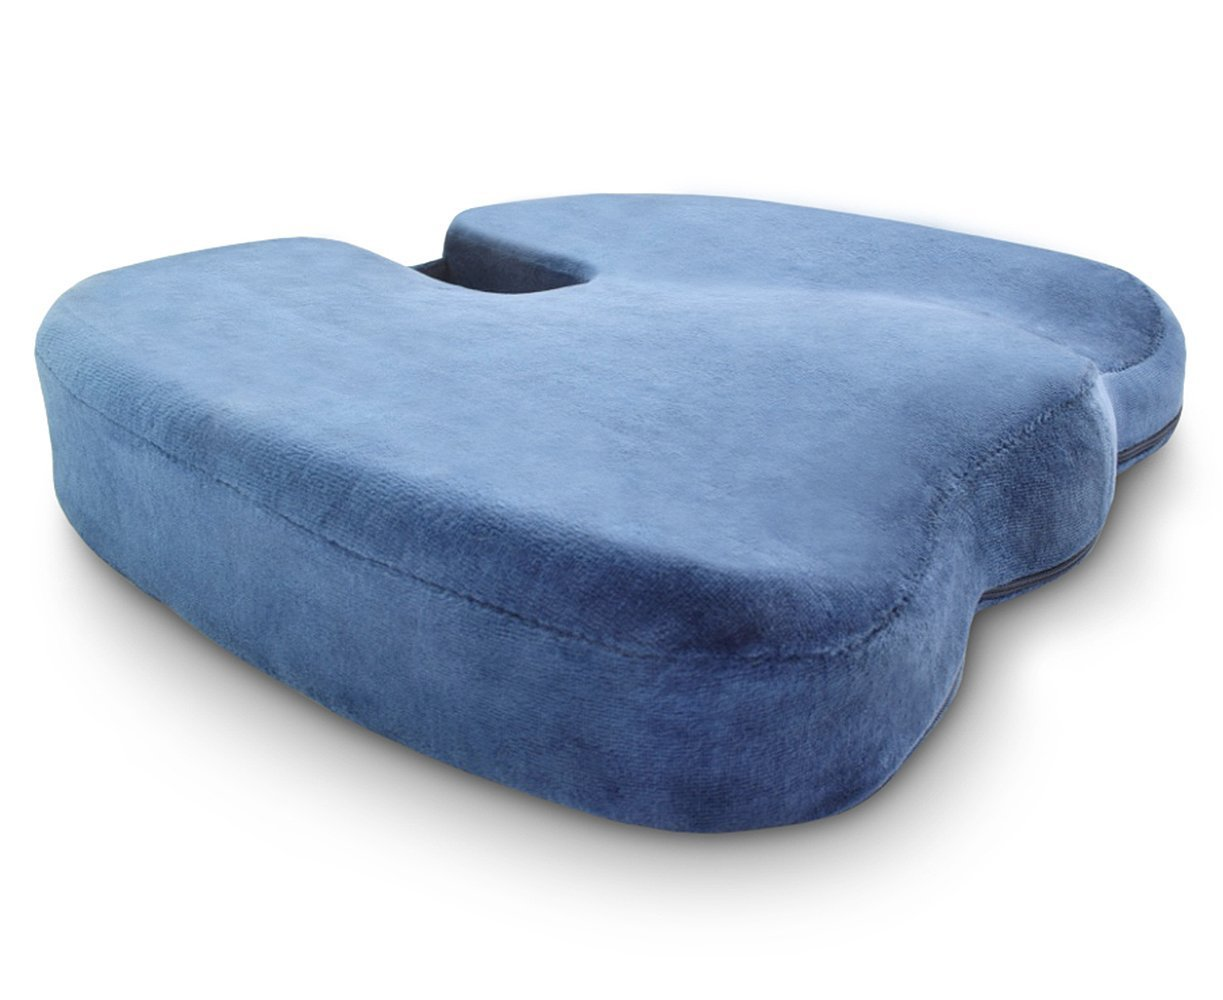 Crafty World Comfy Pro Seat Cushion - Blue Supportive Orthopedic Ergonomic Firm Memory Foam - Suitable for Office Chairs, Wheelchairs, Cars, Trucks and More - Extra Removable Washable Cover Included by Crafty World